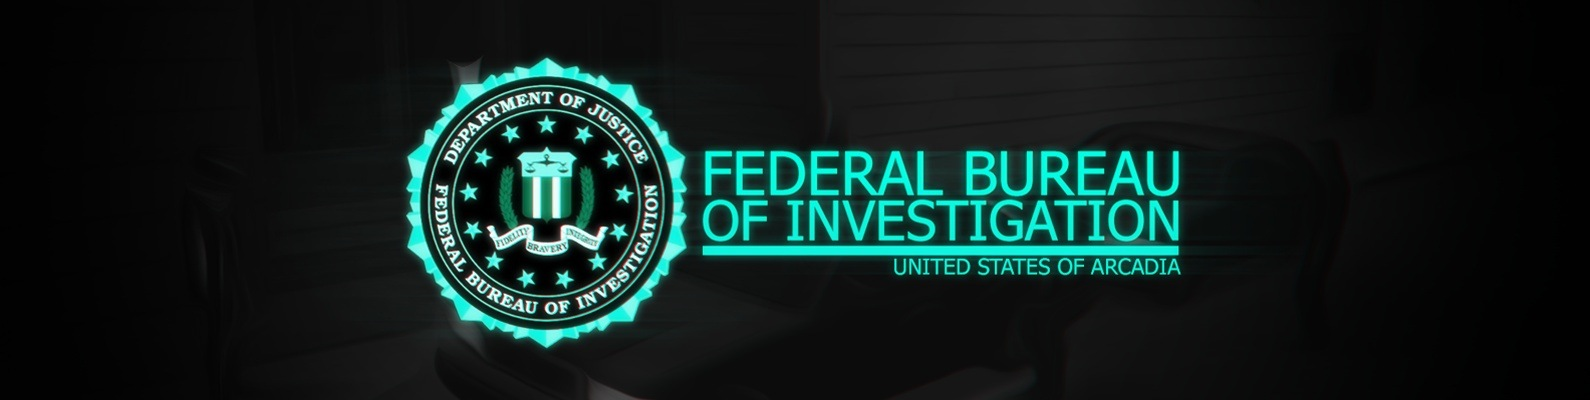 Why not try federal sex bureau